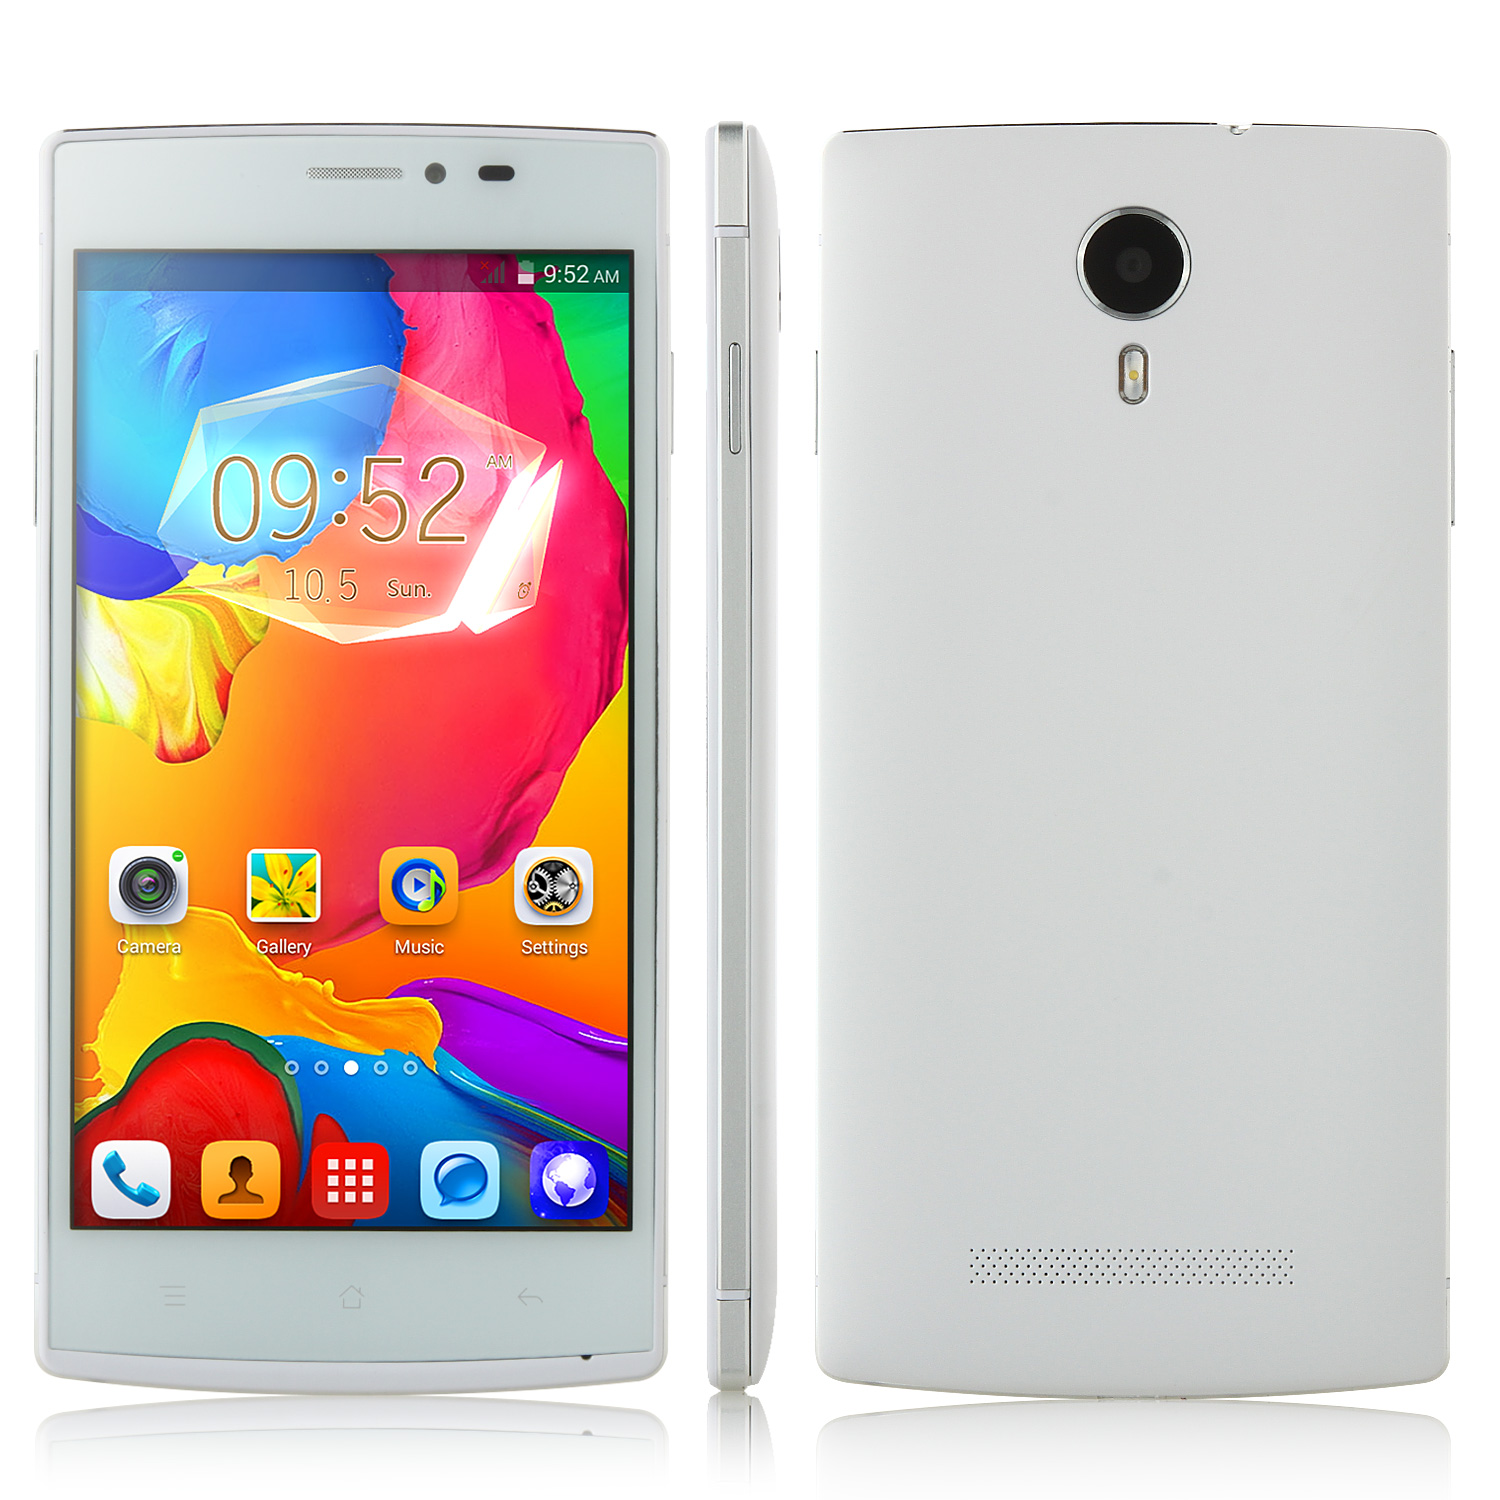 Nandan F7 Smartphone Android 4.4 MTK6582 Quad Core 3G Smart Wake 5.0 Inch Silver Side